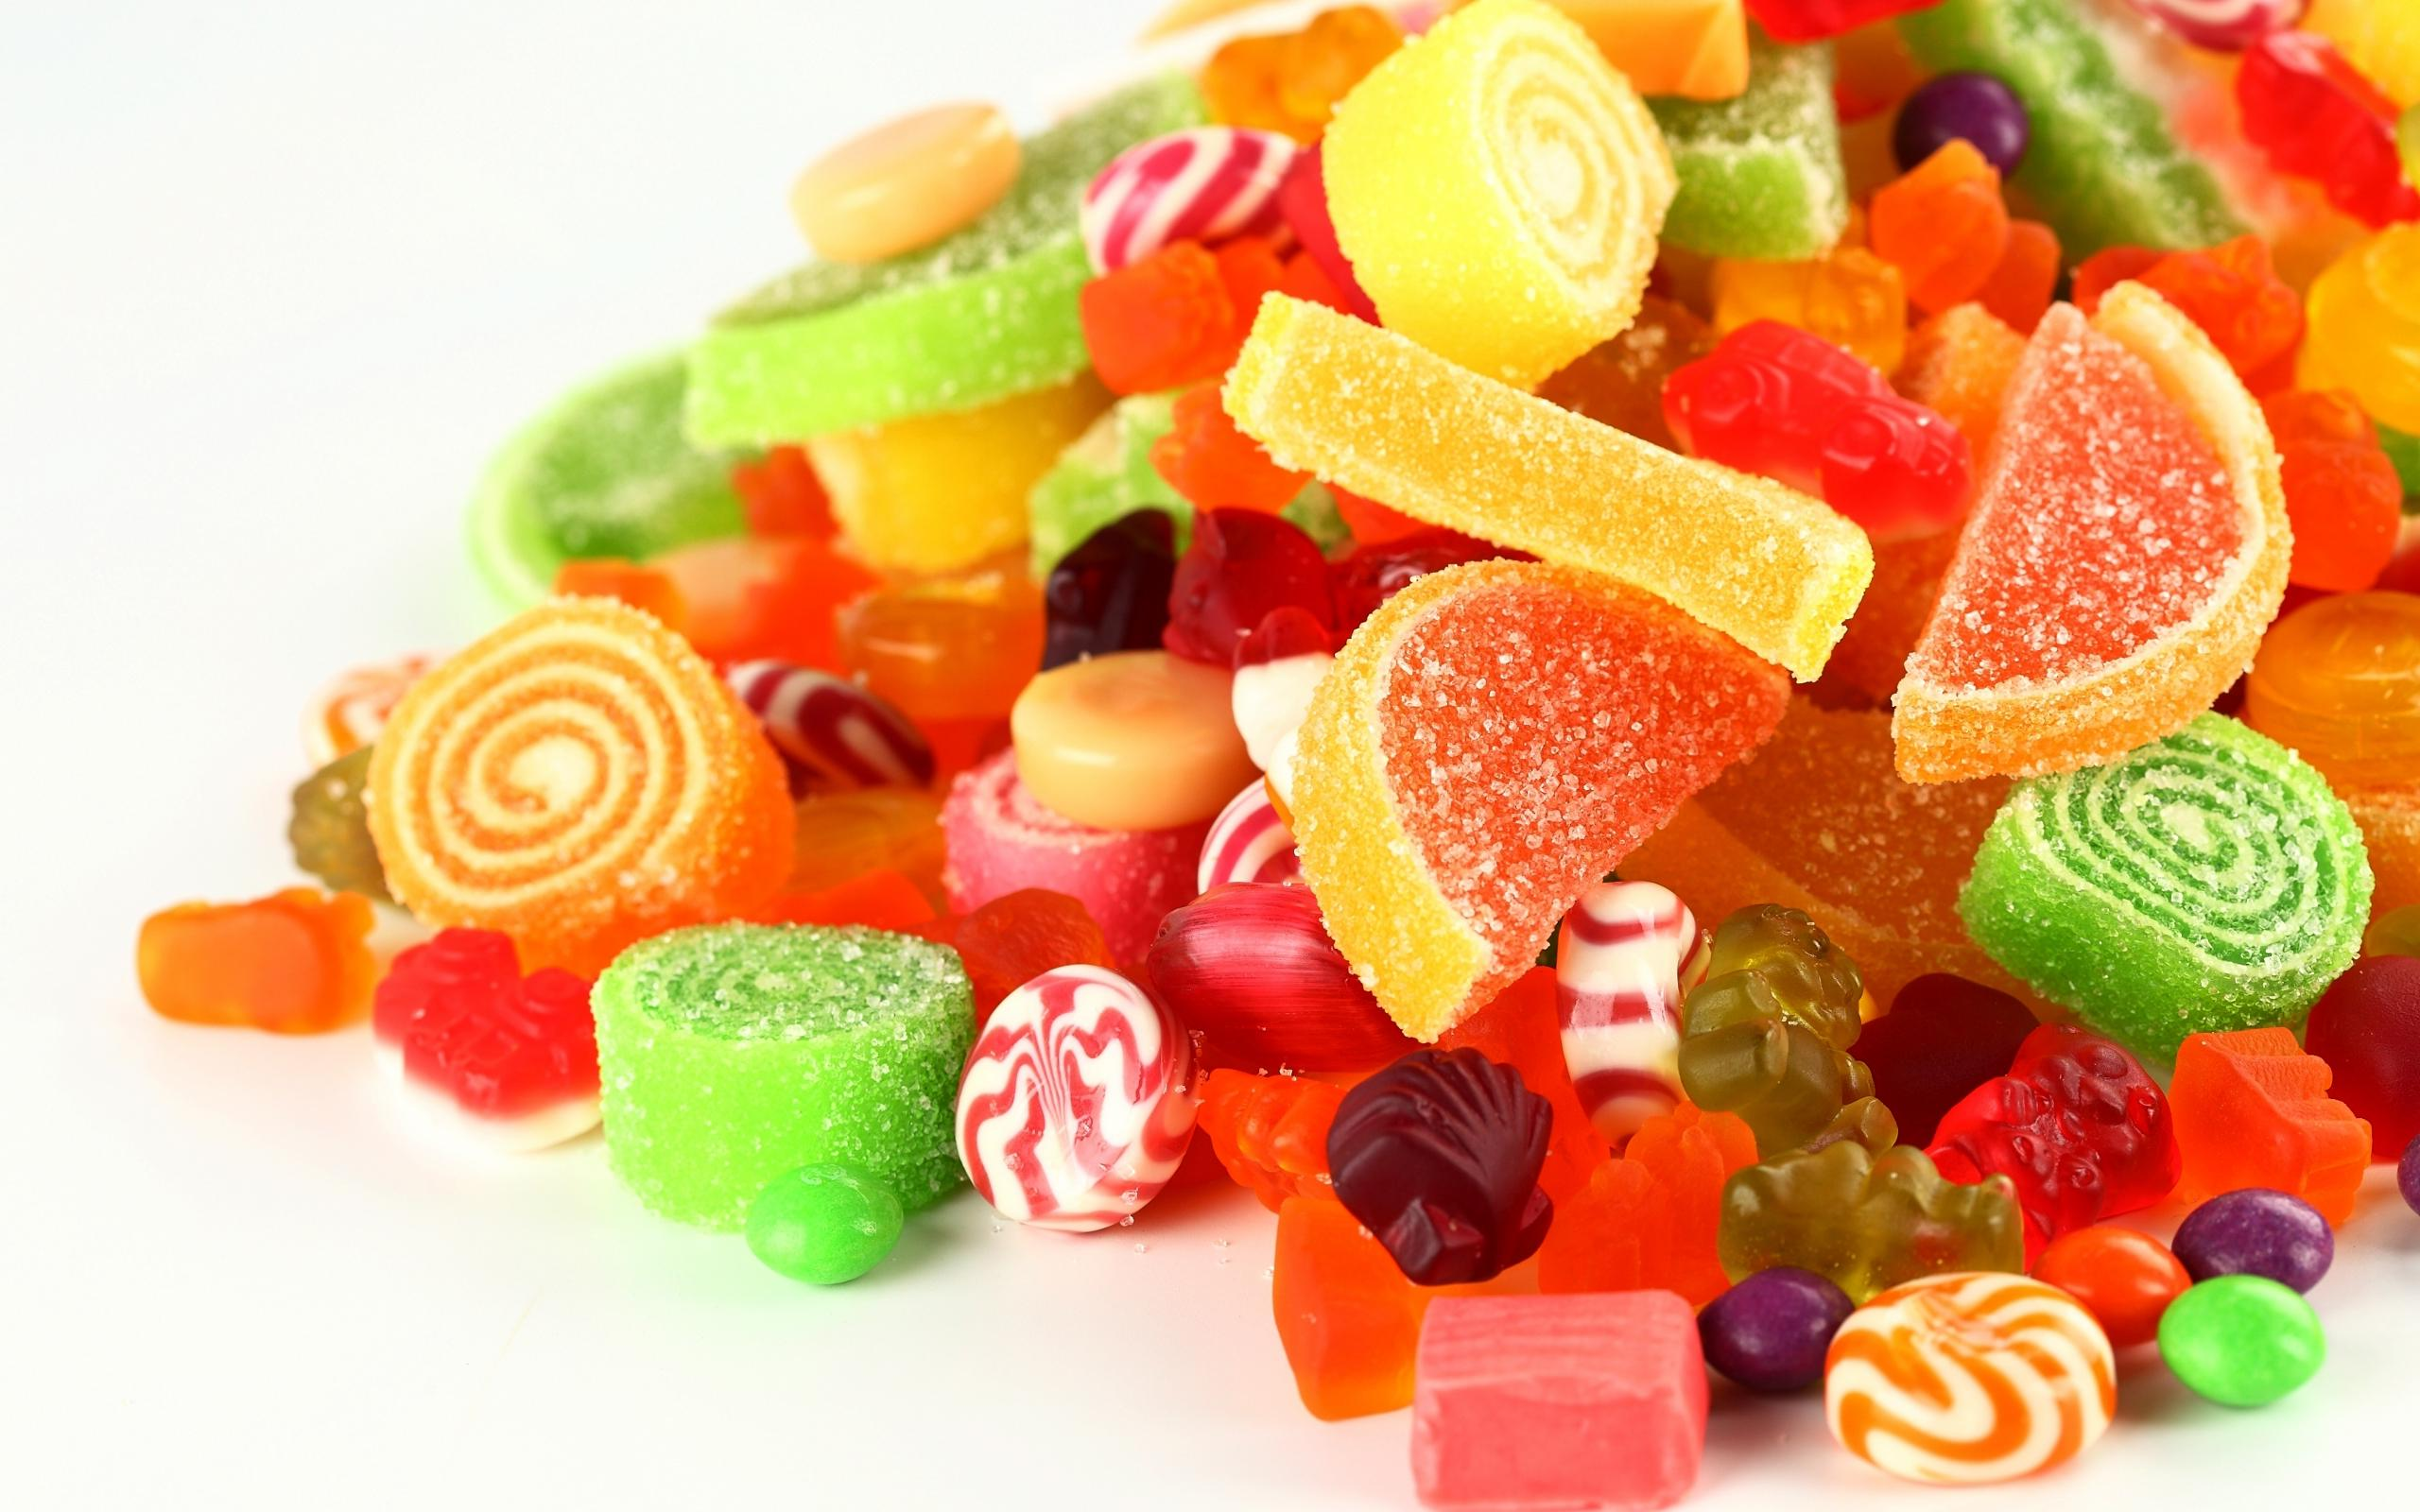 Colorful Candy Wallpapers - Top Free Colorful Candy Backgrounds